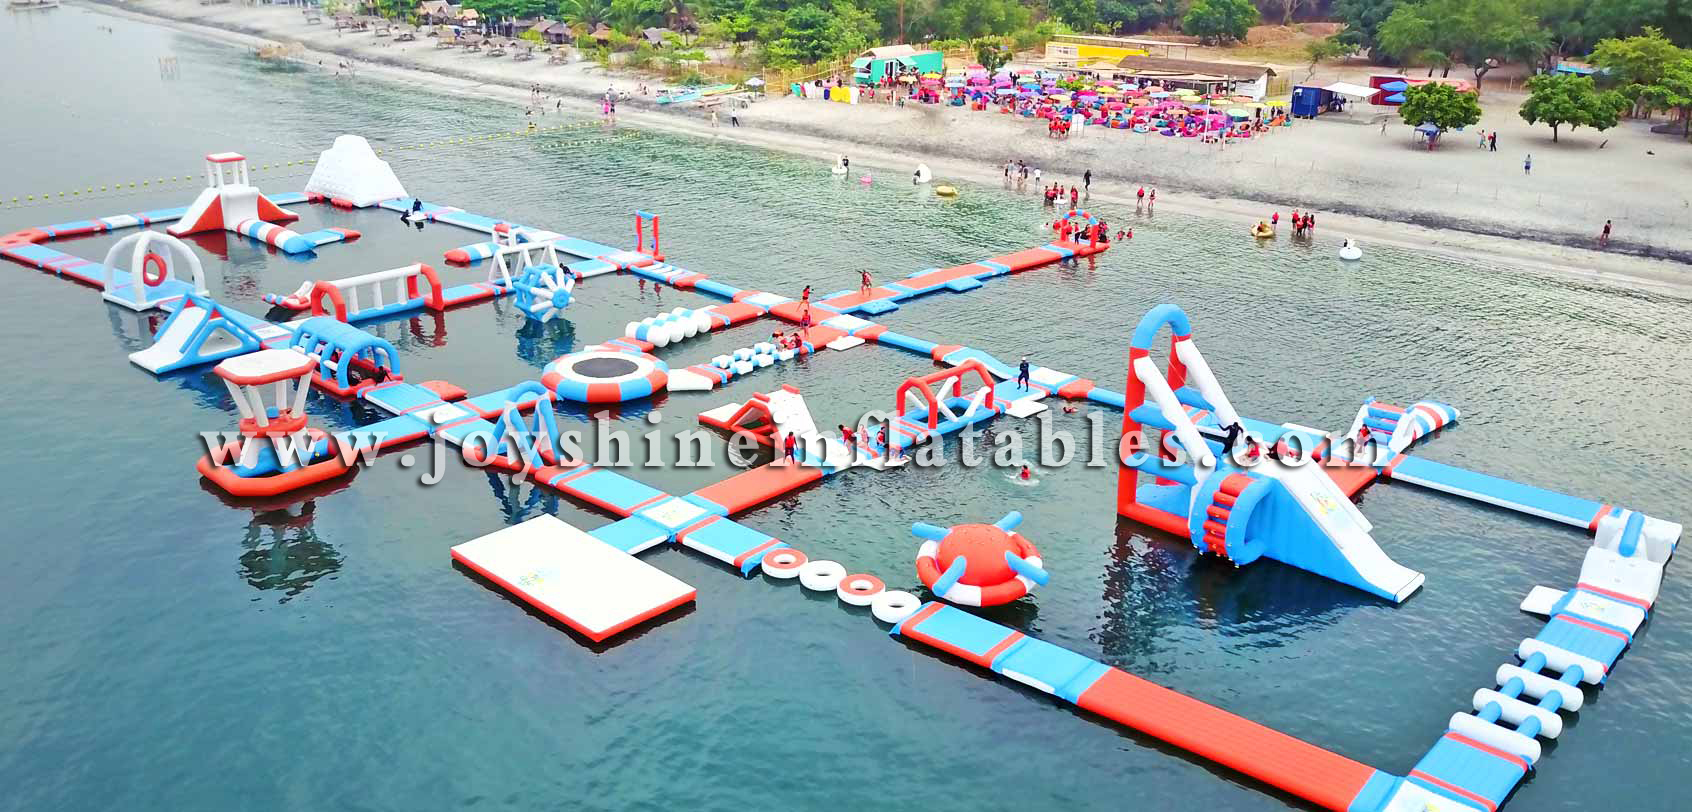 Super Huge Inflatable Aquapark Obstacle Course Theme Park Playground Inflatable Water Sports Floating Island For Adults